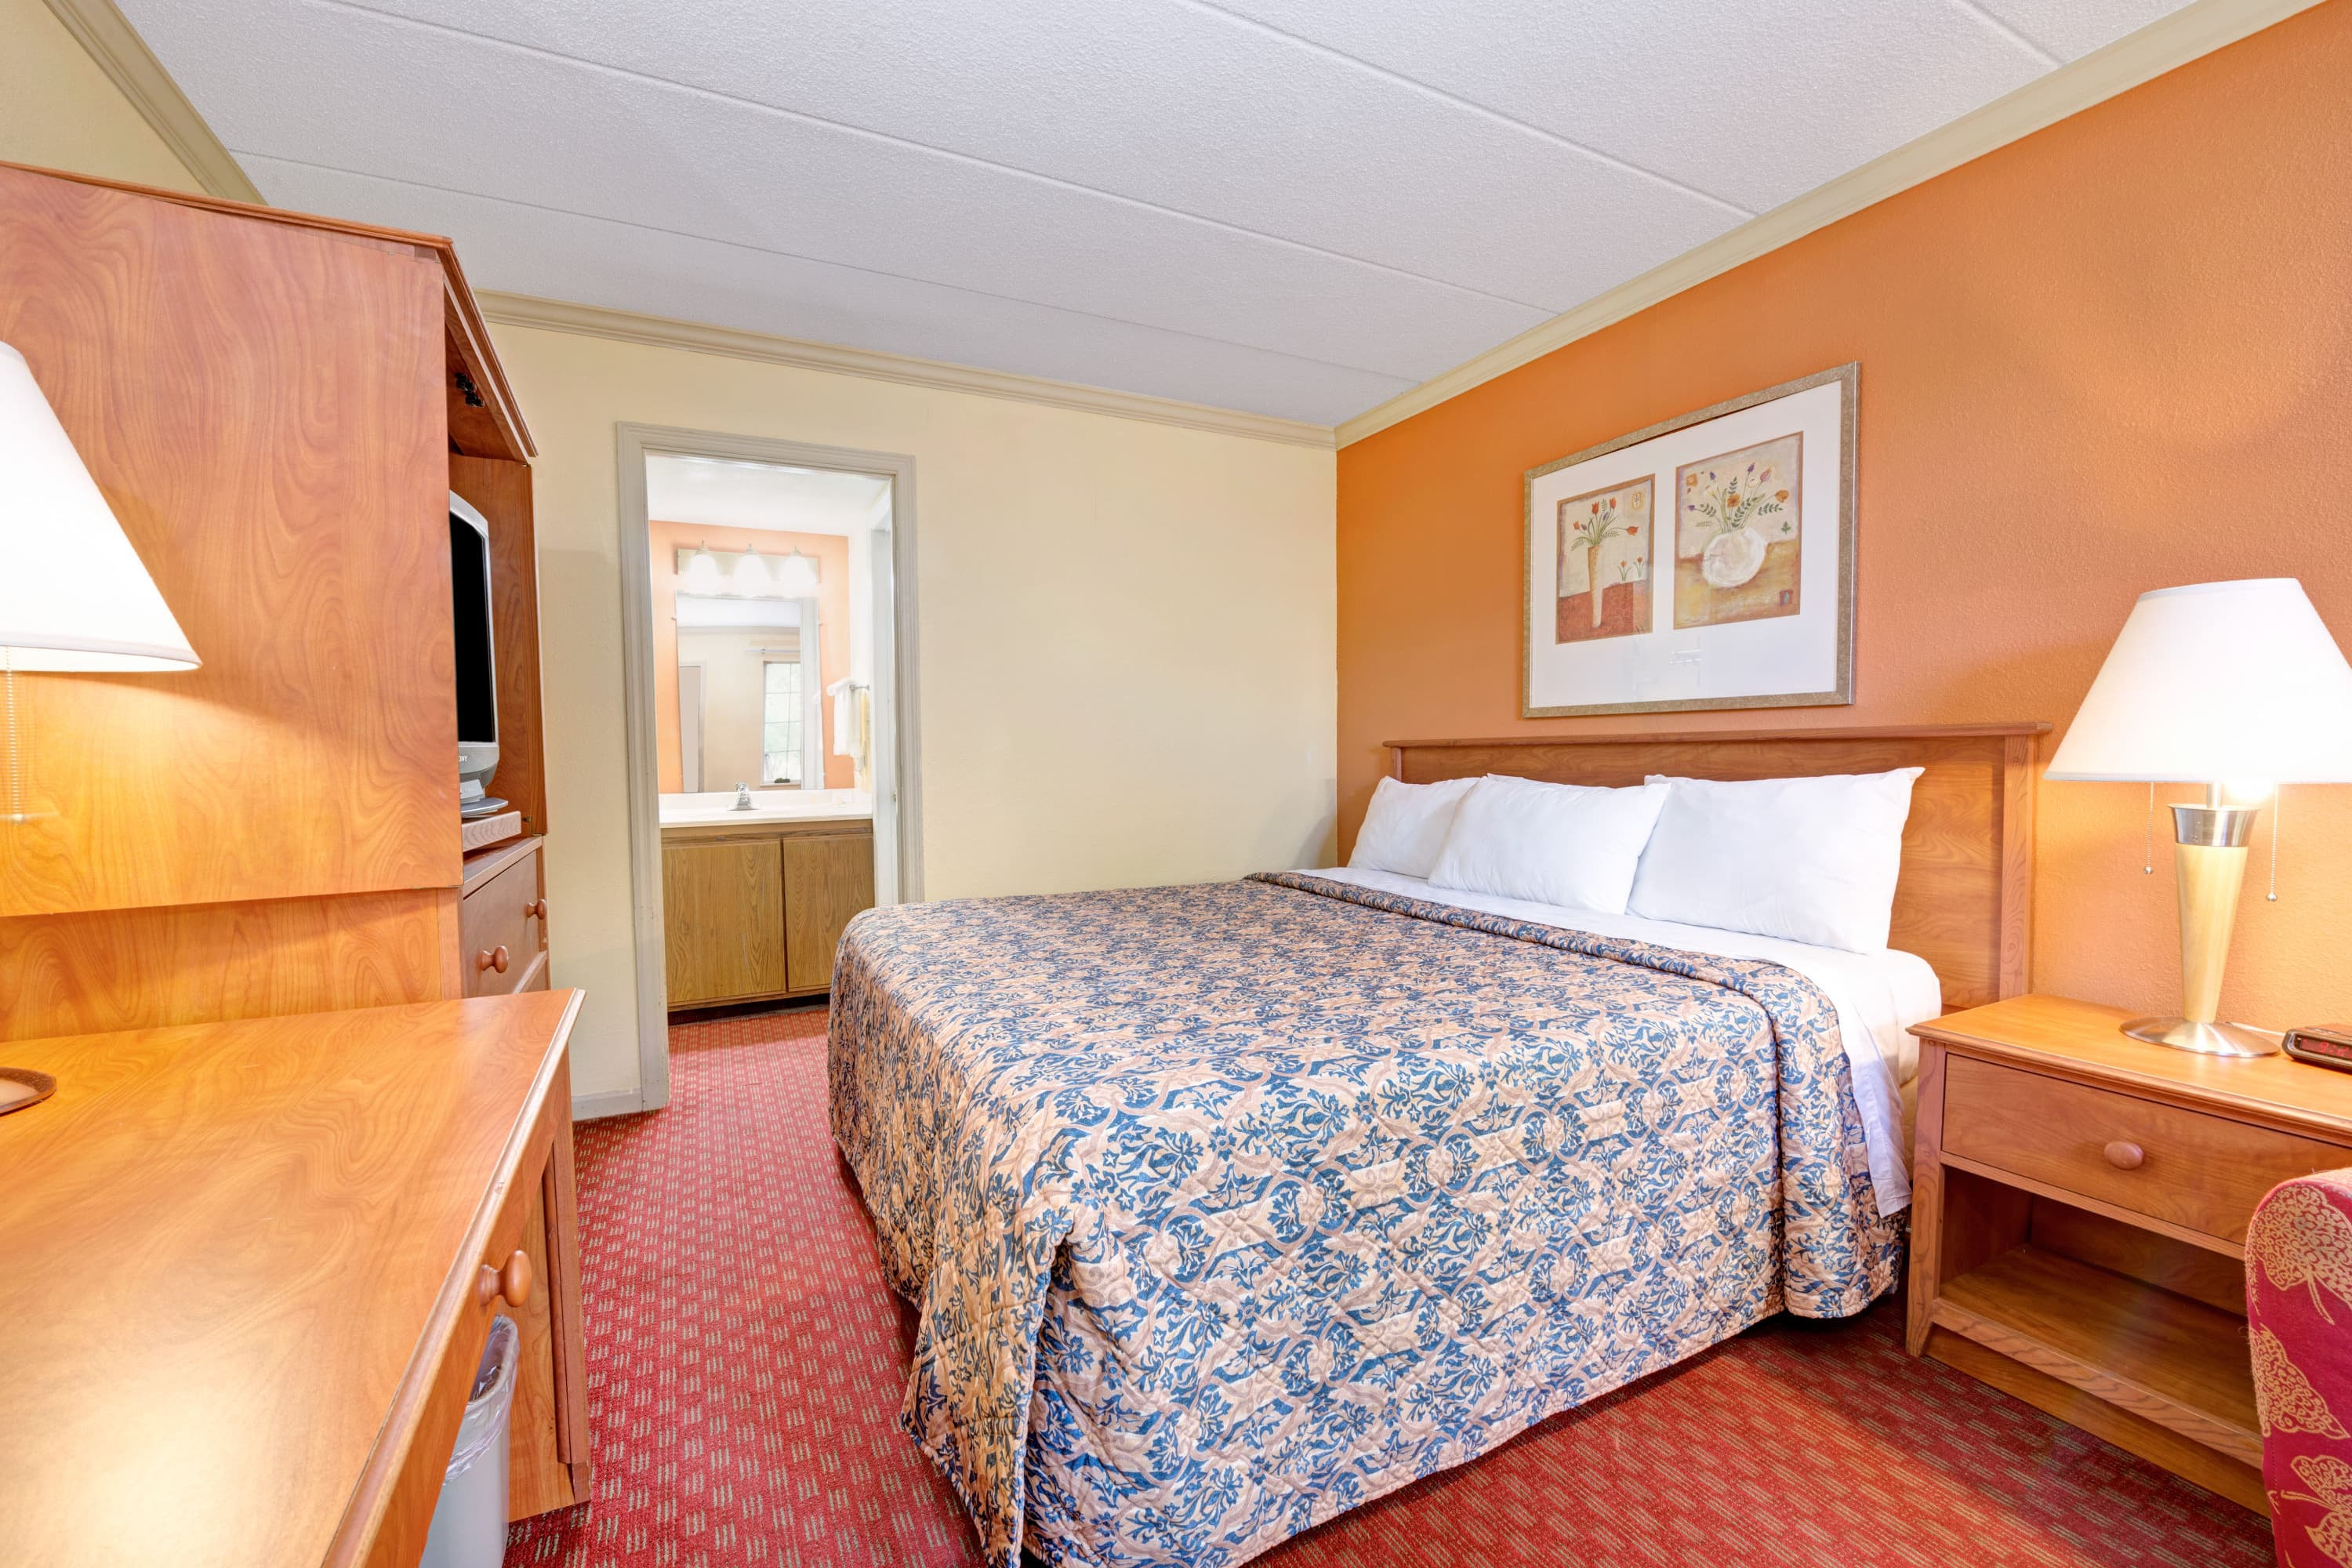 Guest room at the Days Inn Dayton South in Dayton, Ohio